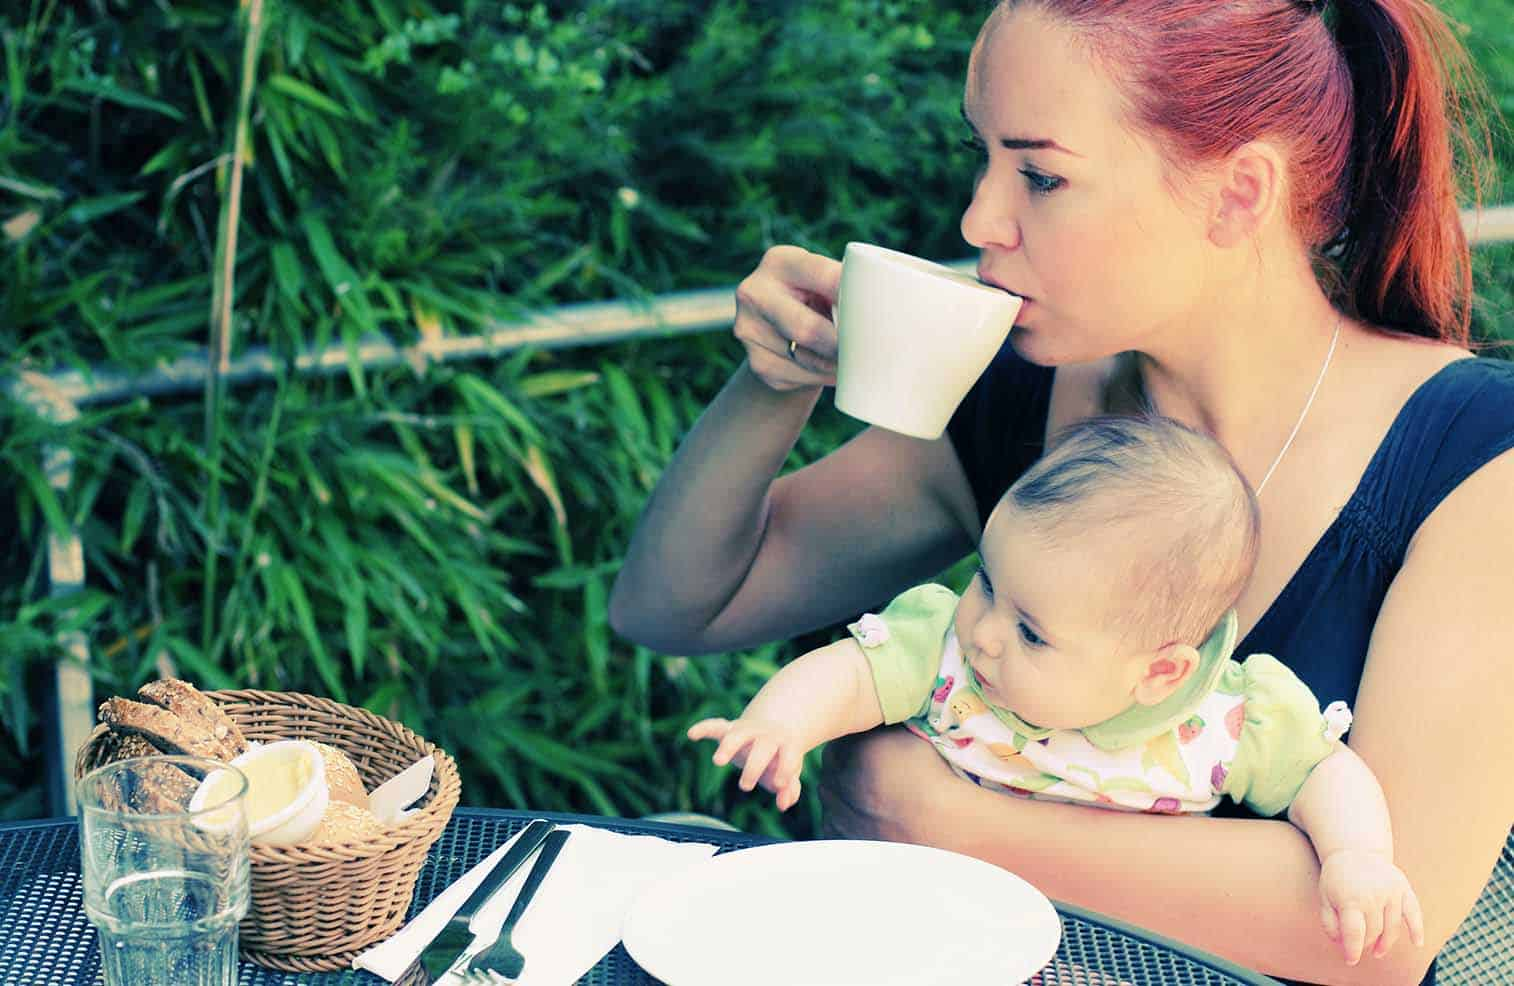 Being a new mother is difficult and exhausting. Eating good food like these options can help you boost energy as a new mama and is super nourishing too.